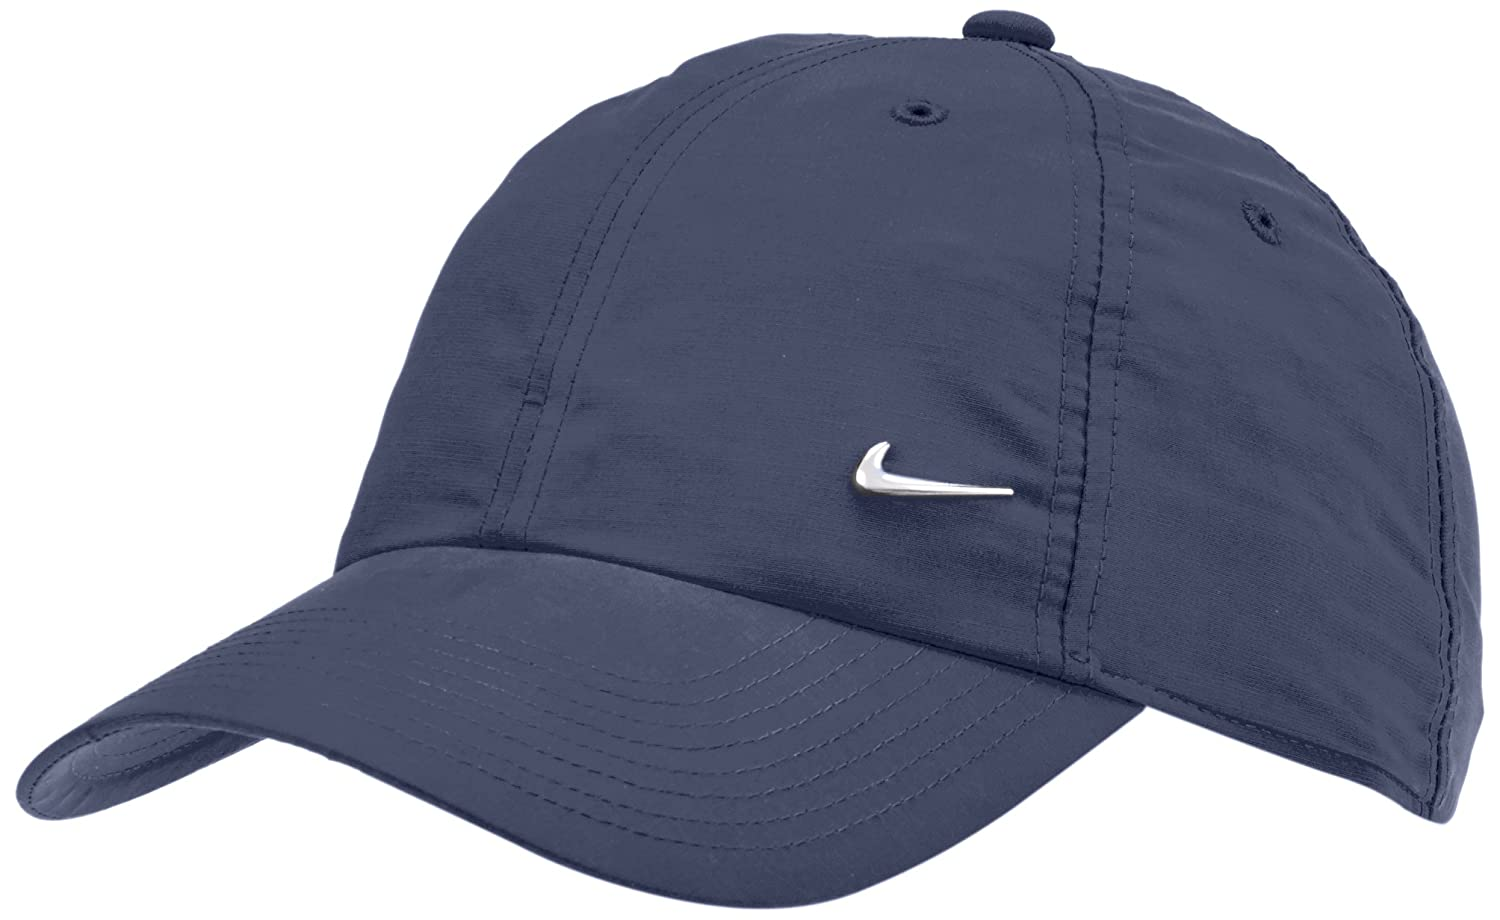 Amazon.com  Nike Metal Swoosh Black Unisex Adult Baseball Cap   Hat One Size   Sports   Outdoors f3dc1ba19200